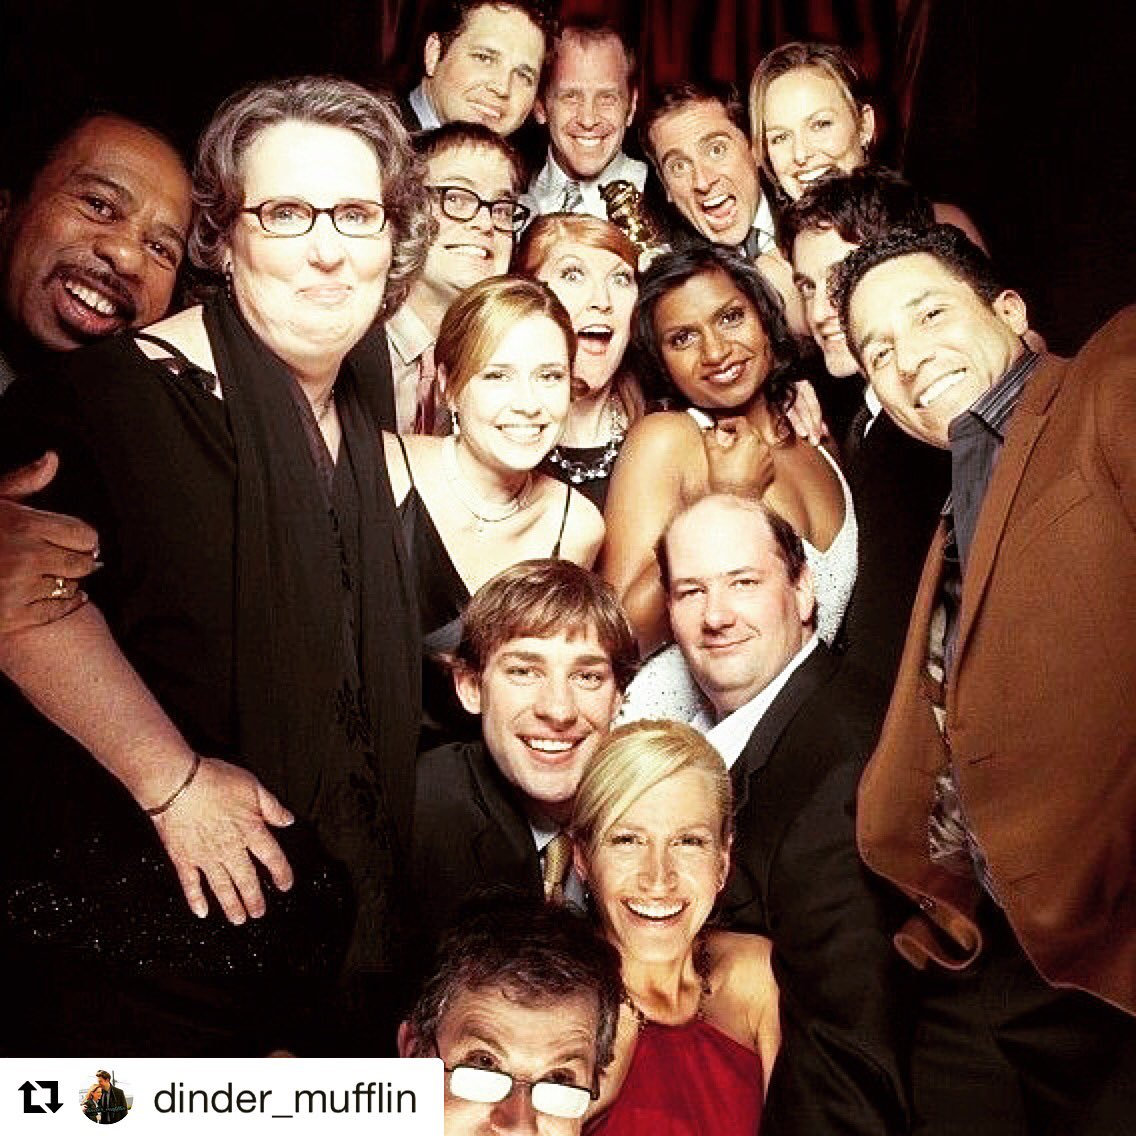 Missing these people. Best cast ever. #theOffice @theofficenbc https://t.co/SSV7nUwrCa